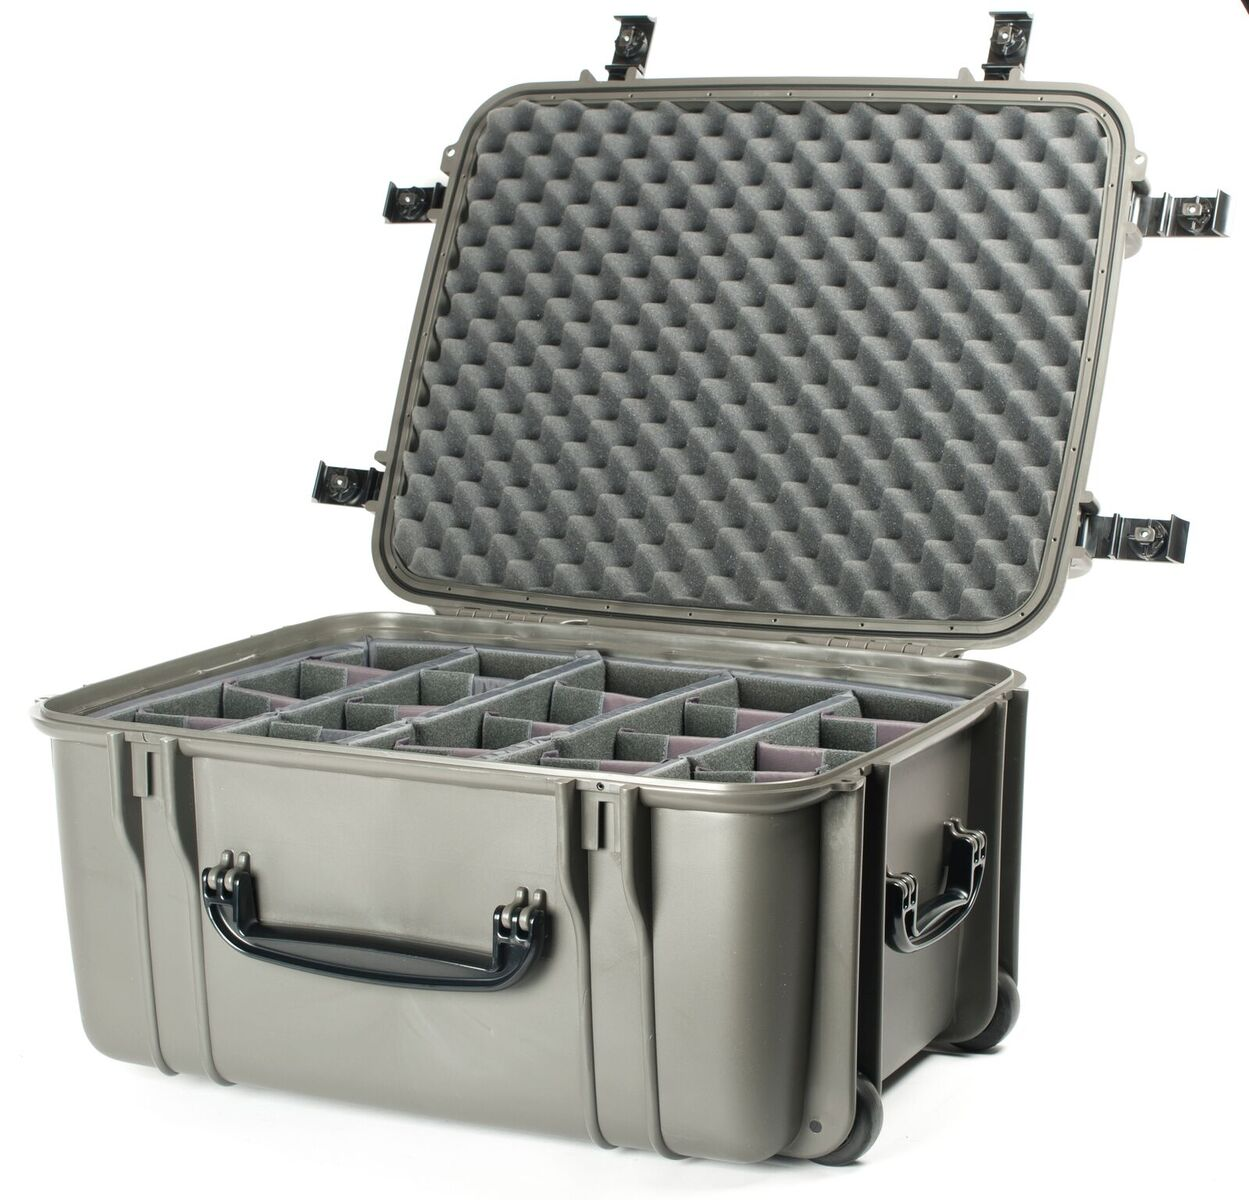 SEAHORSE PROTECTIVE EQUIPMENT CASES      SE1220D,GM